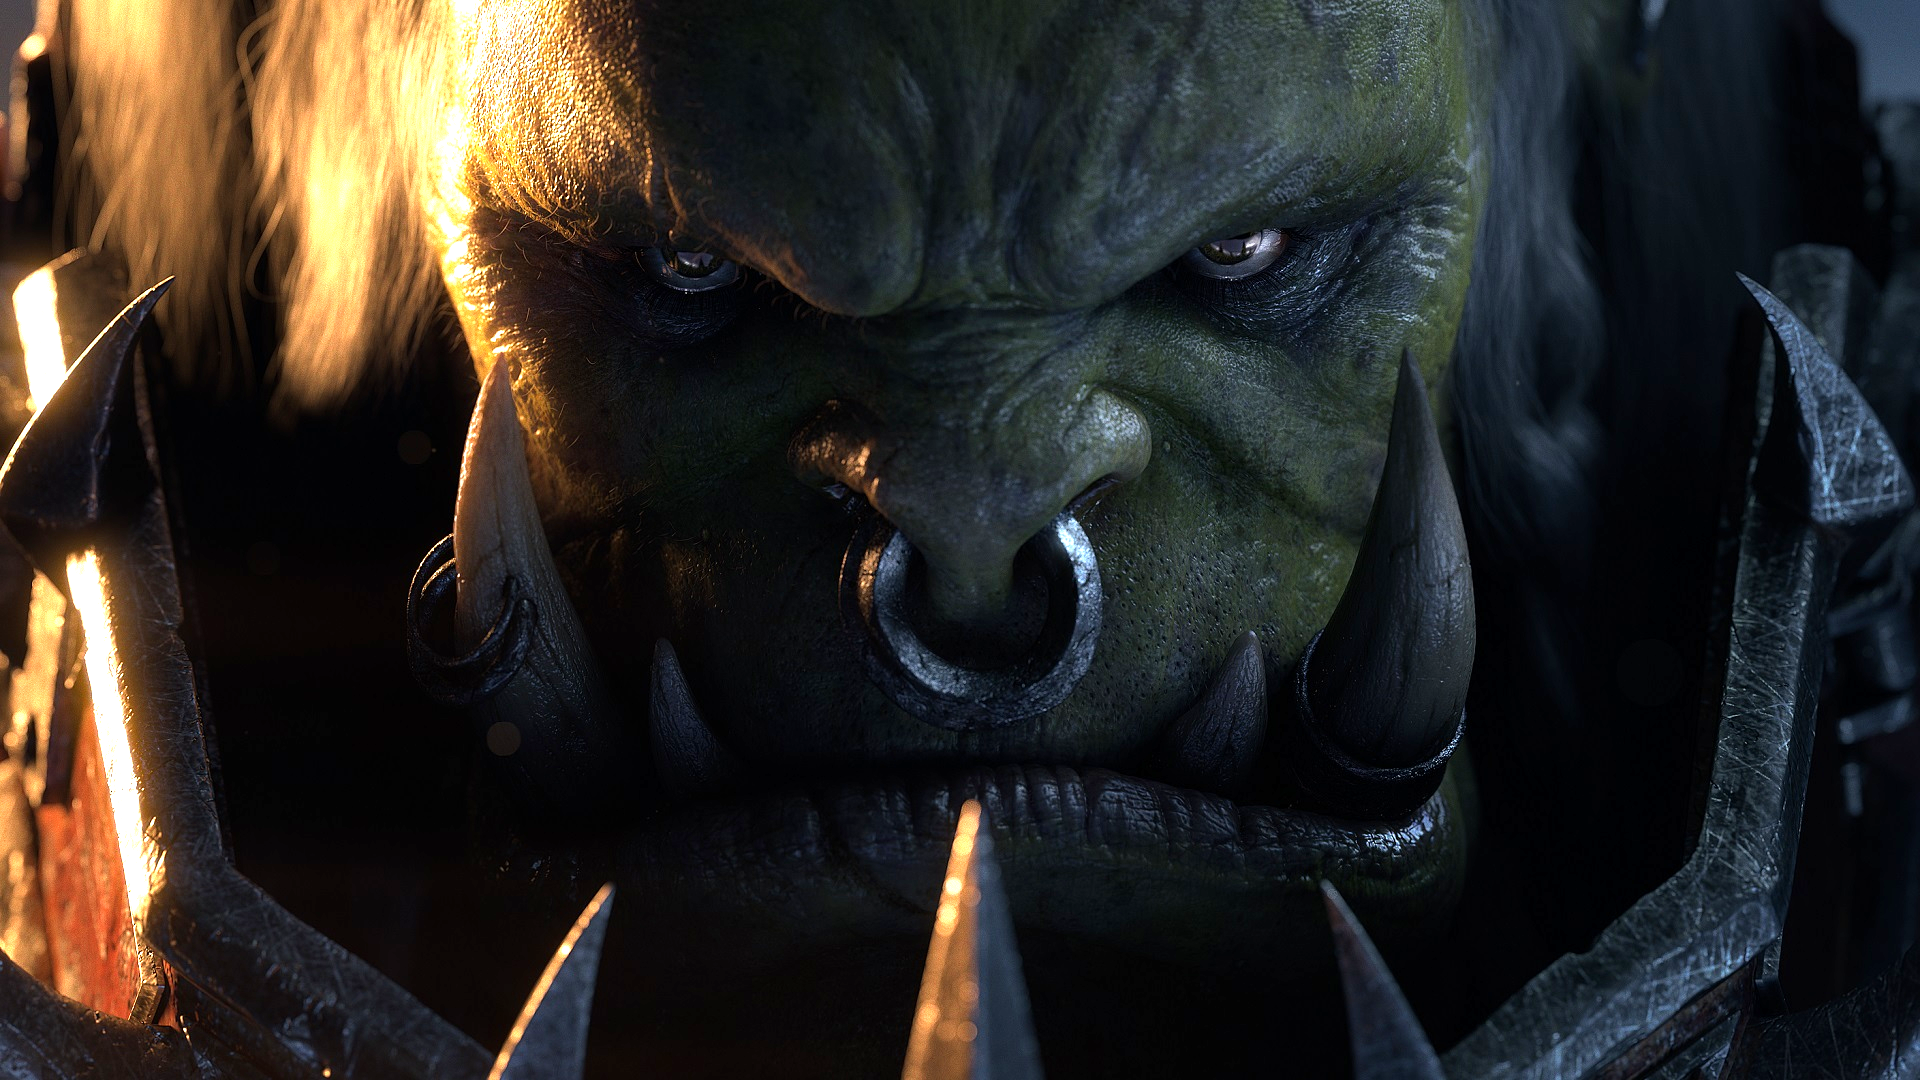 World Of Warcraft 4k Wallpaper: Are World Of Warcraft's Latest Twitch Viewers Here To Stay